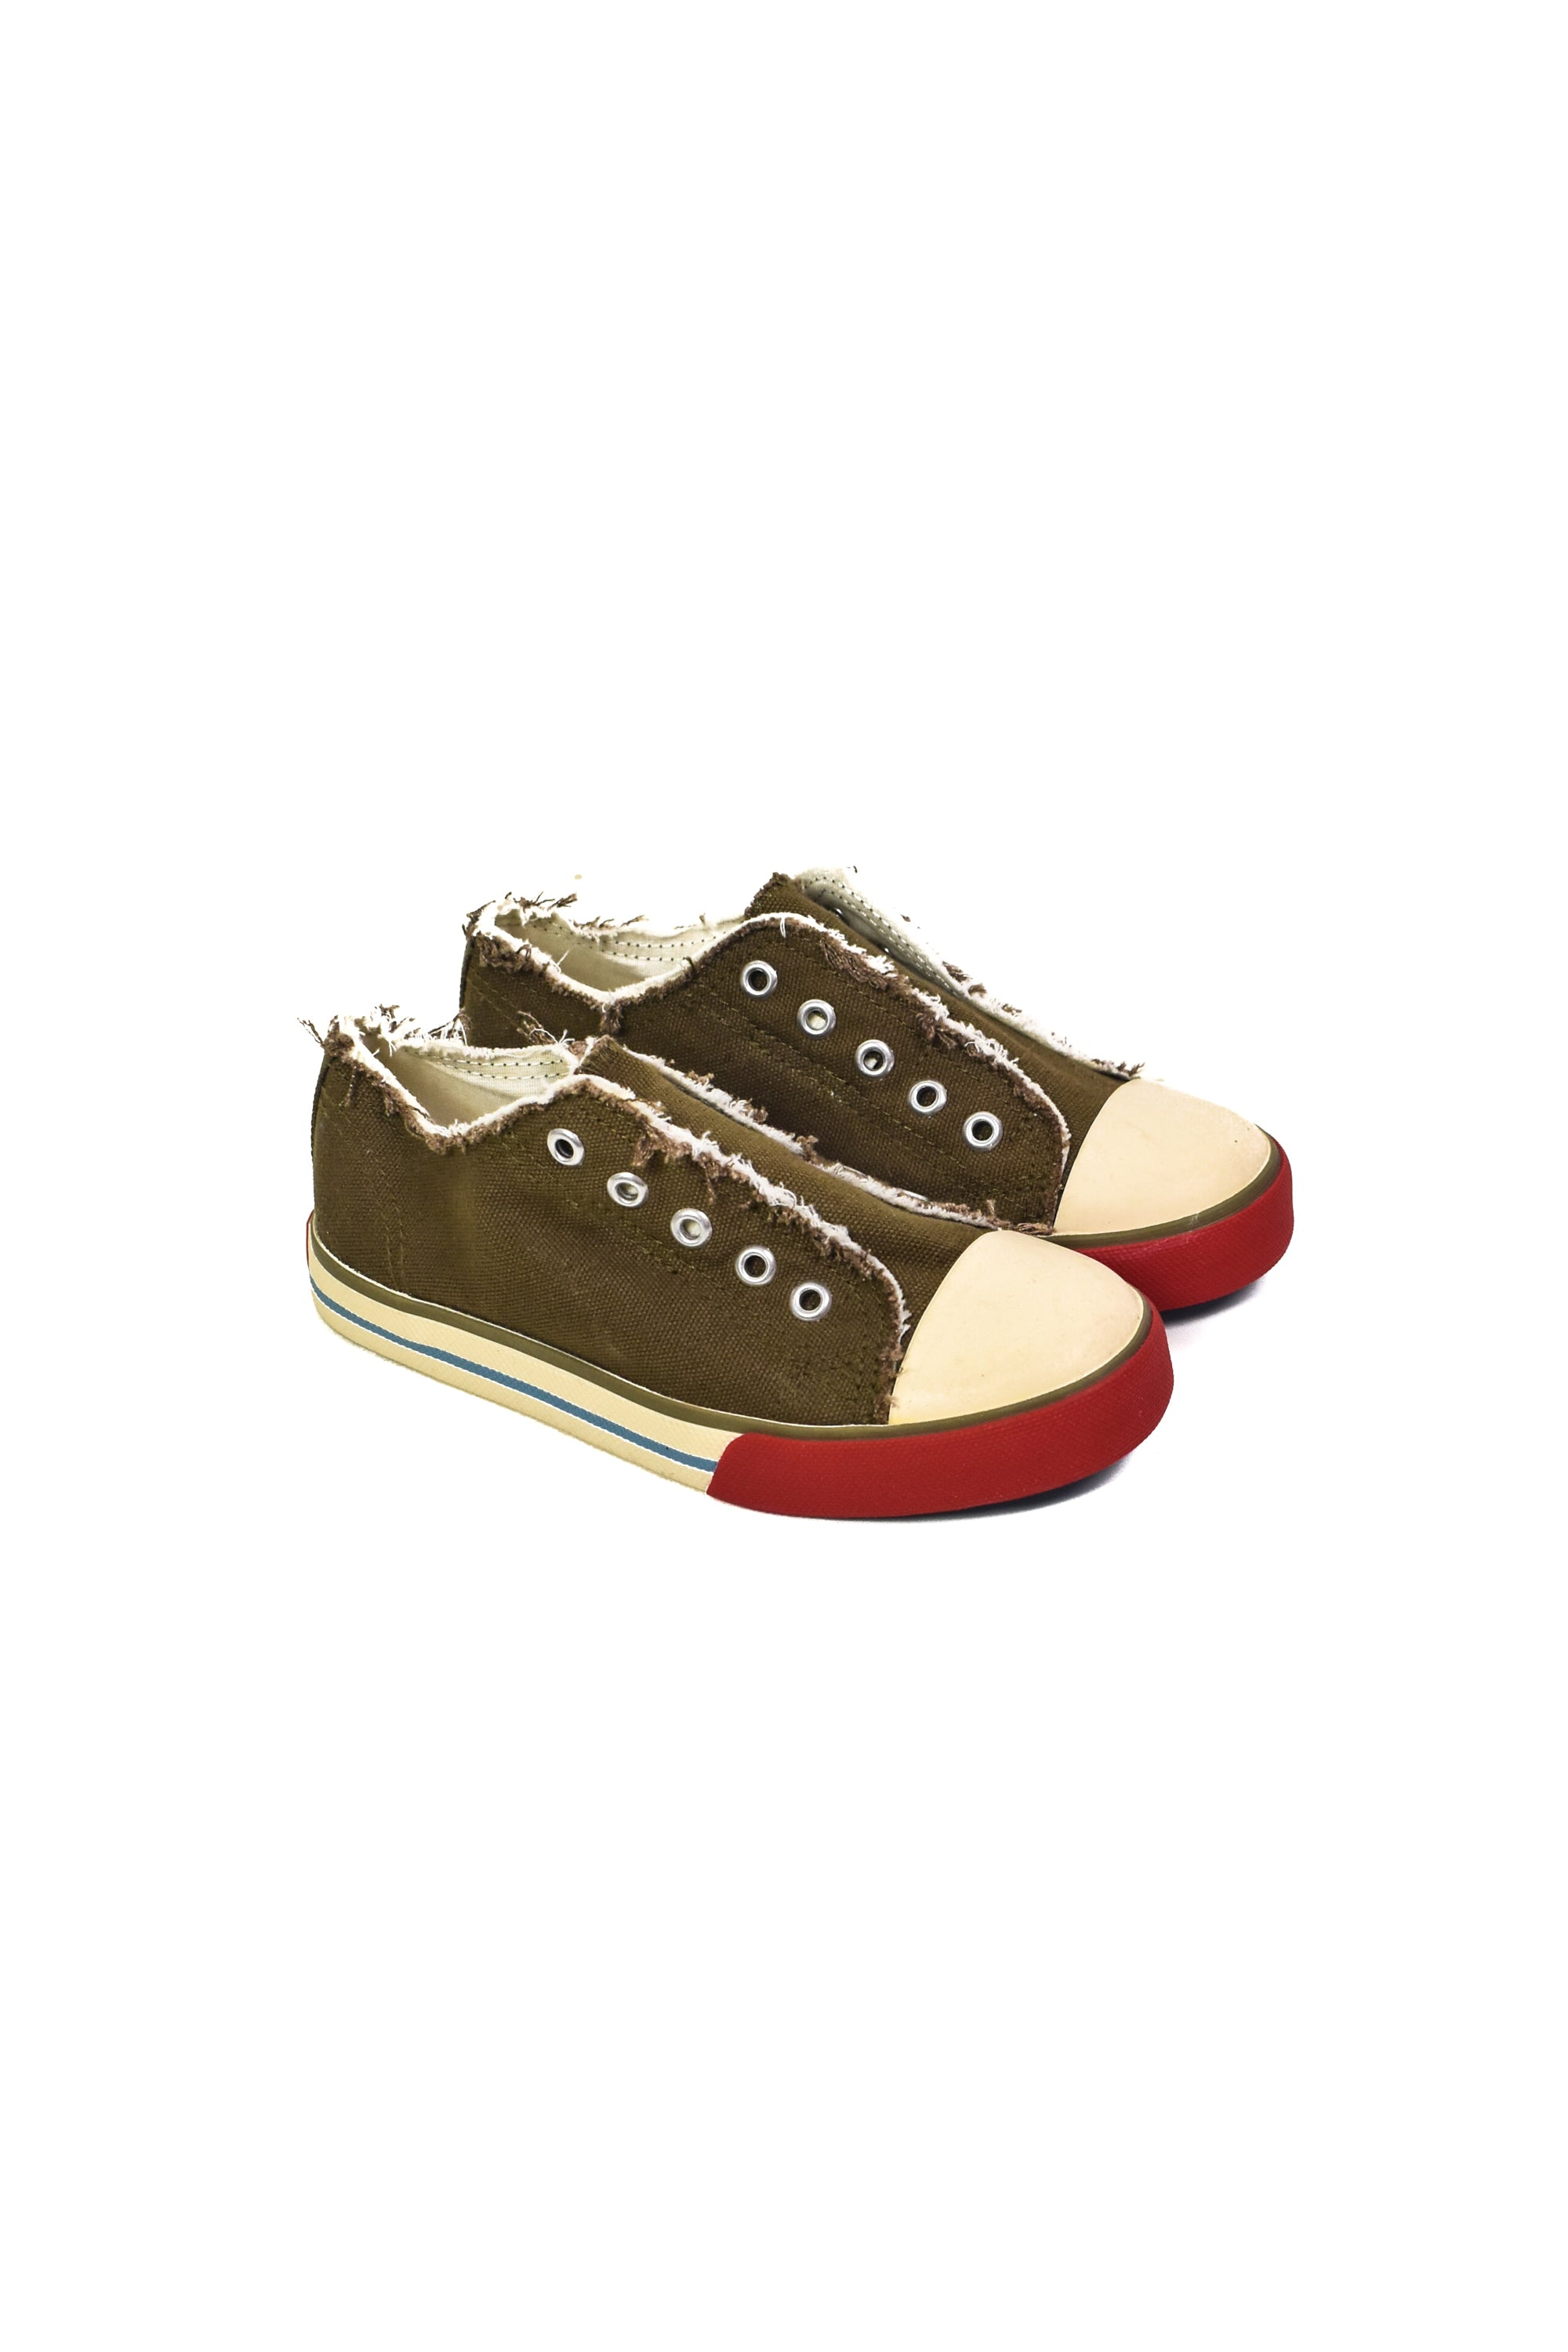 10014700 Boden Kids ~ Shoes 6T (EU 30) at Retykle